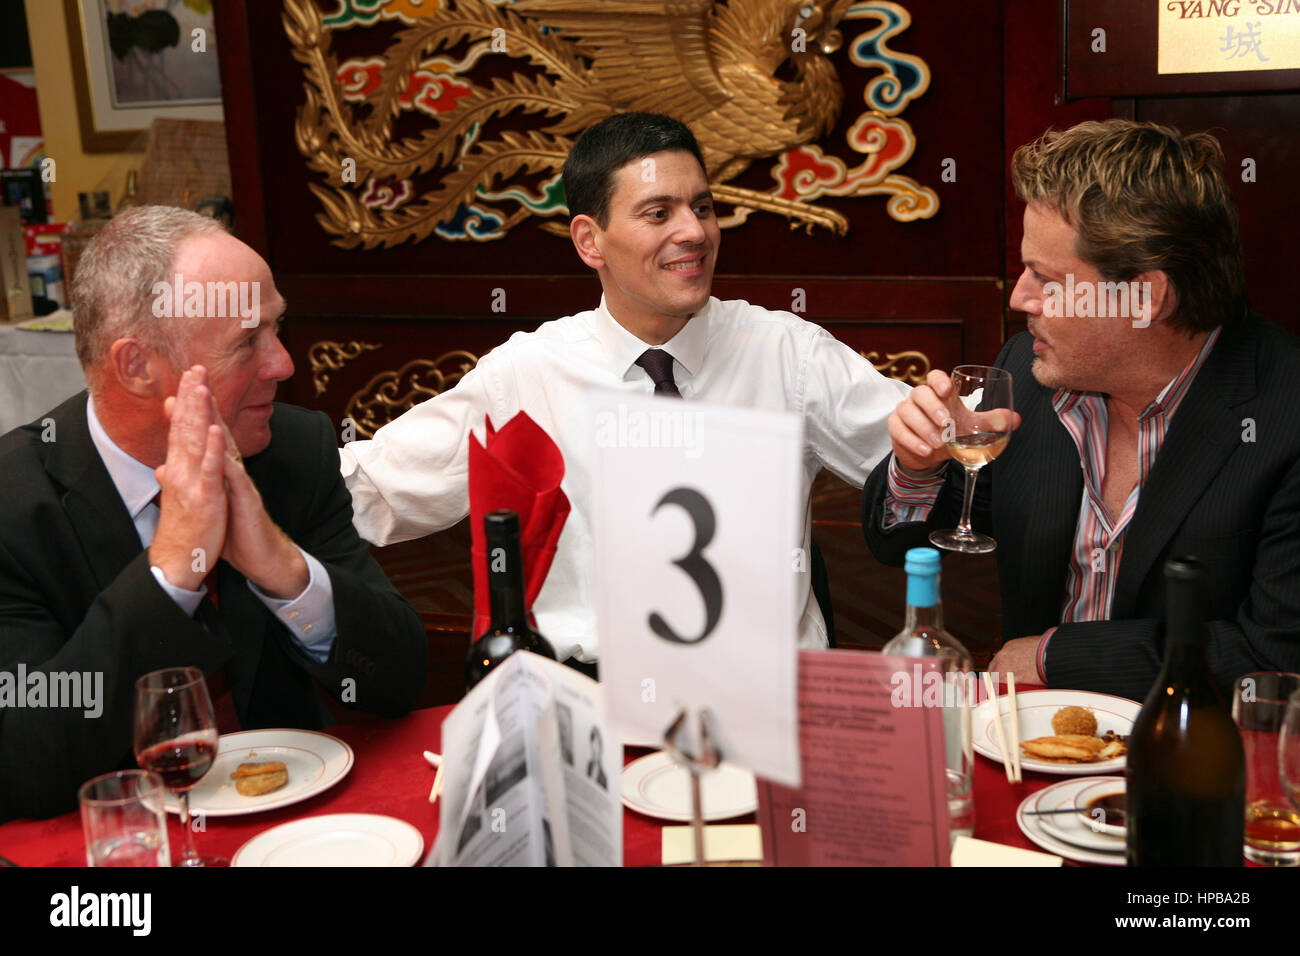 Labour Party Conference. Yang Sing Restaurant. L-R Richard Leese, David Milliband und Eddie Izzard. Stockbild